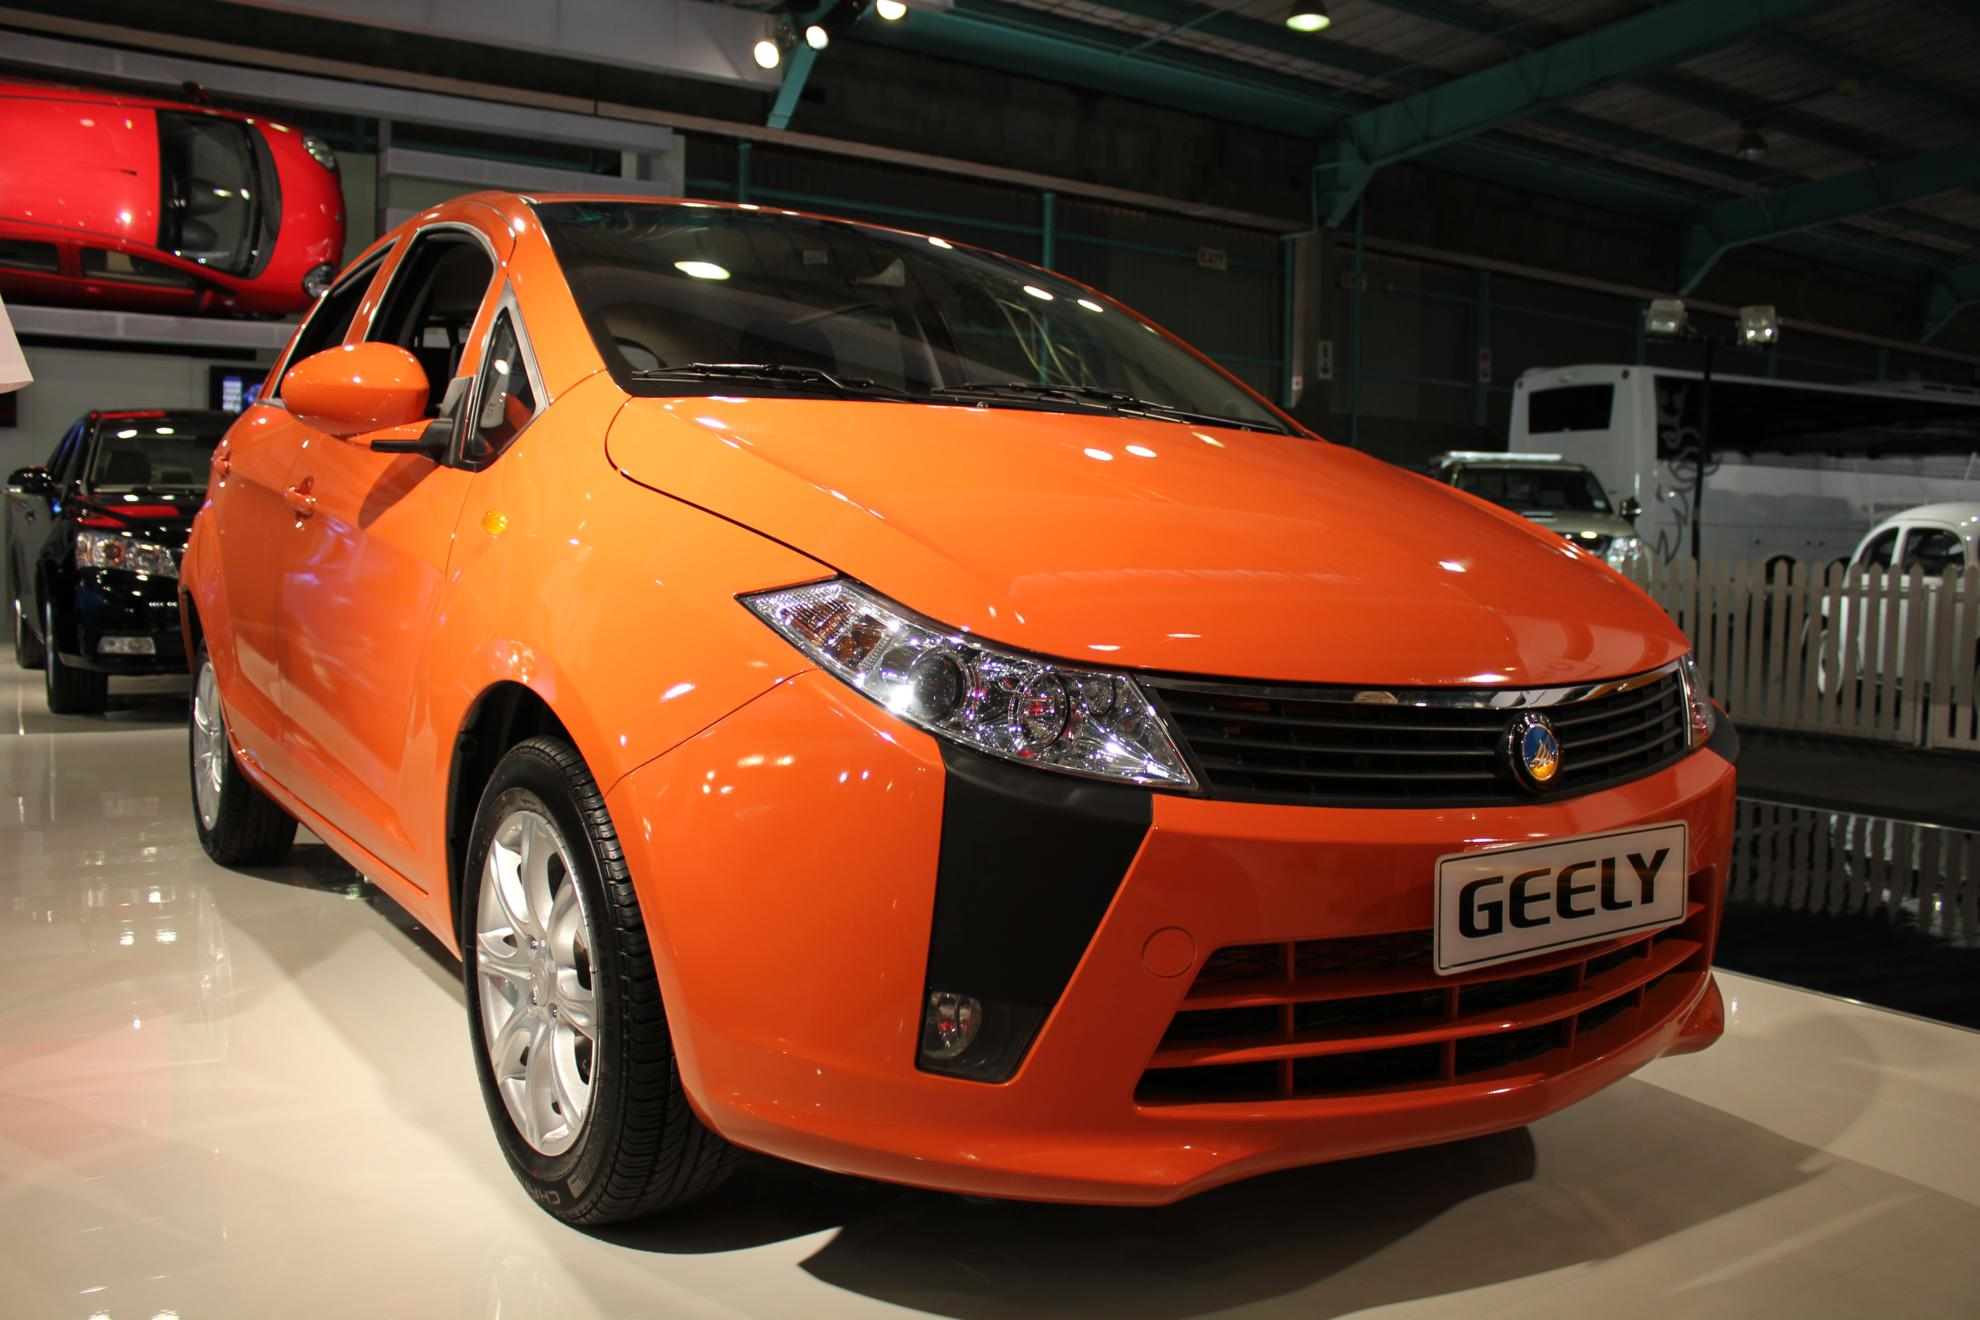 Geely at the Johannesburg Motor Show